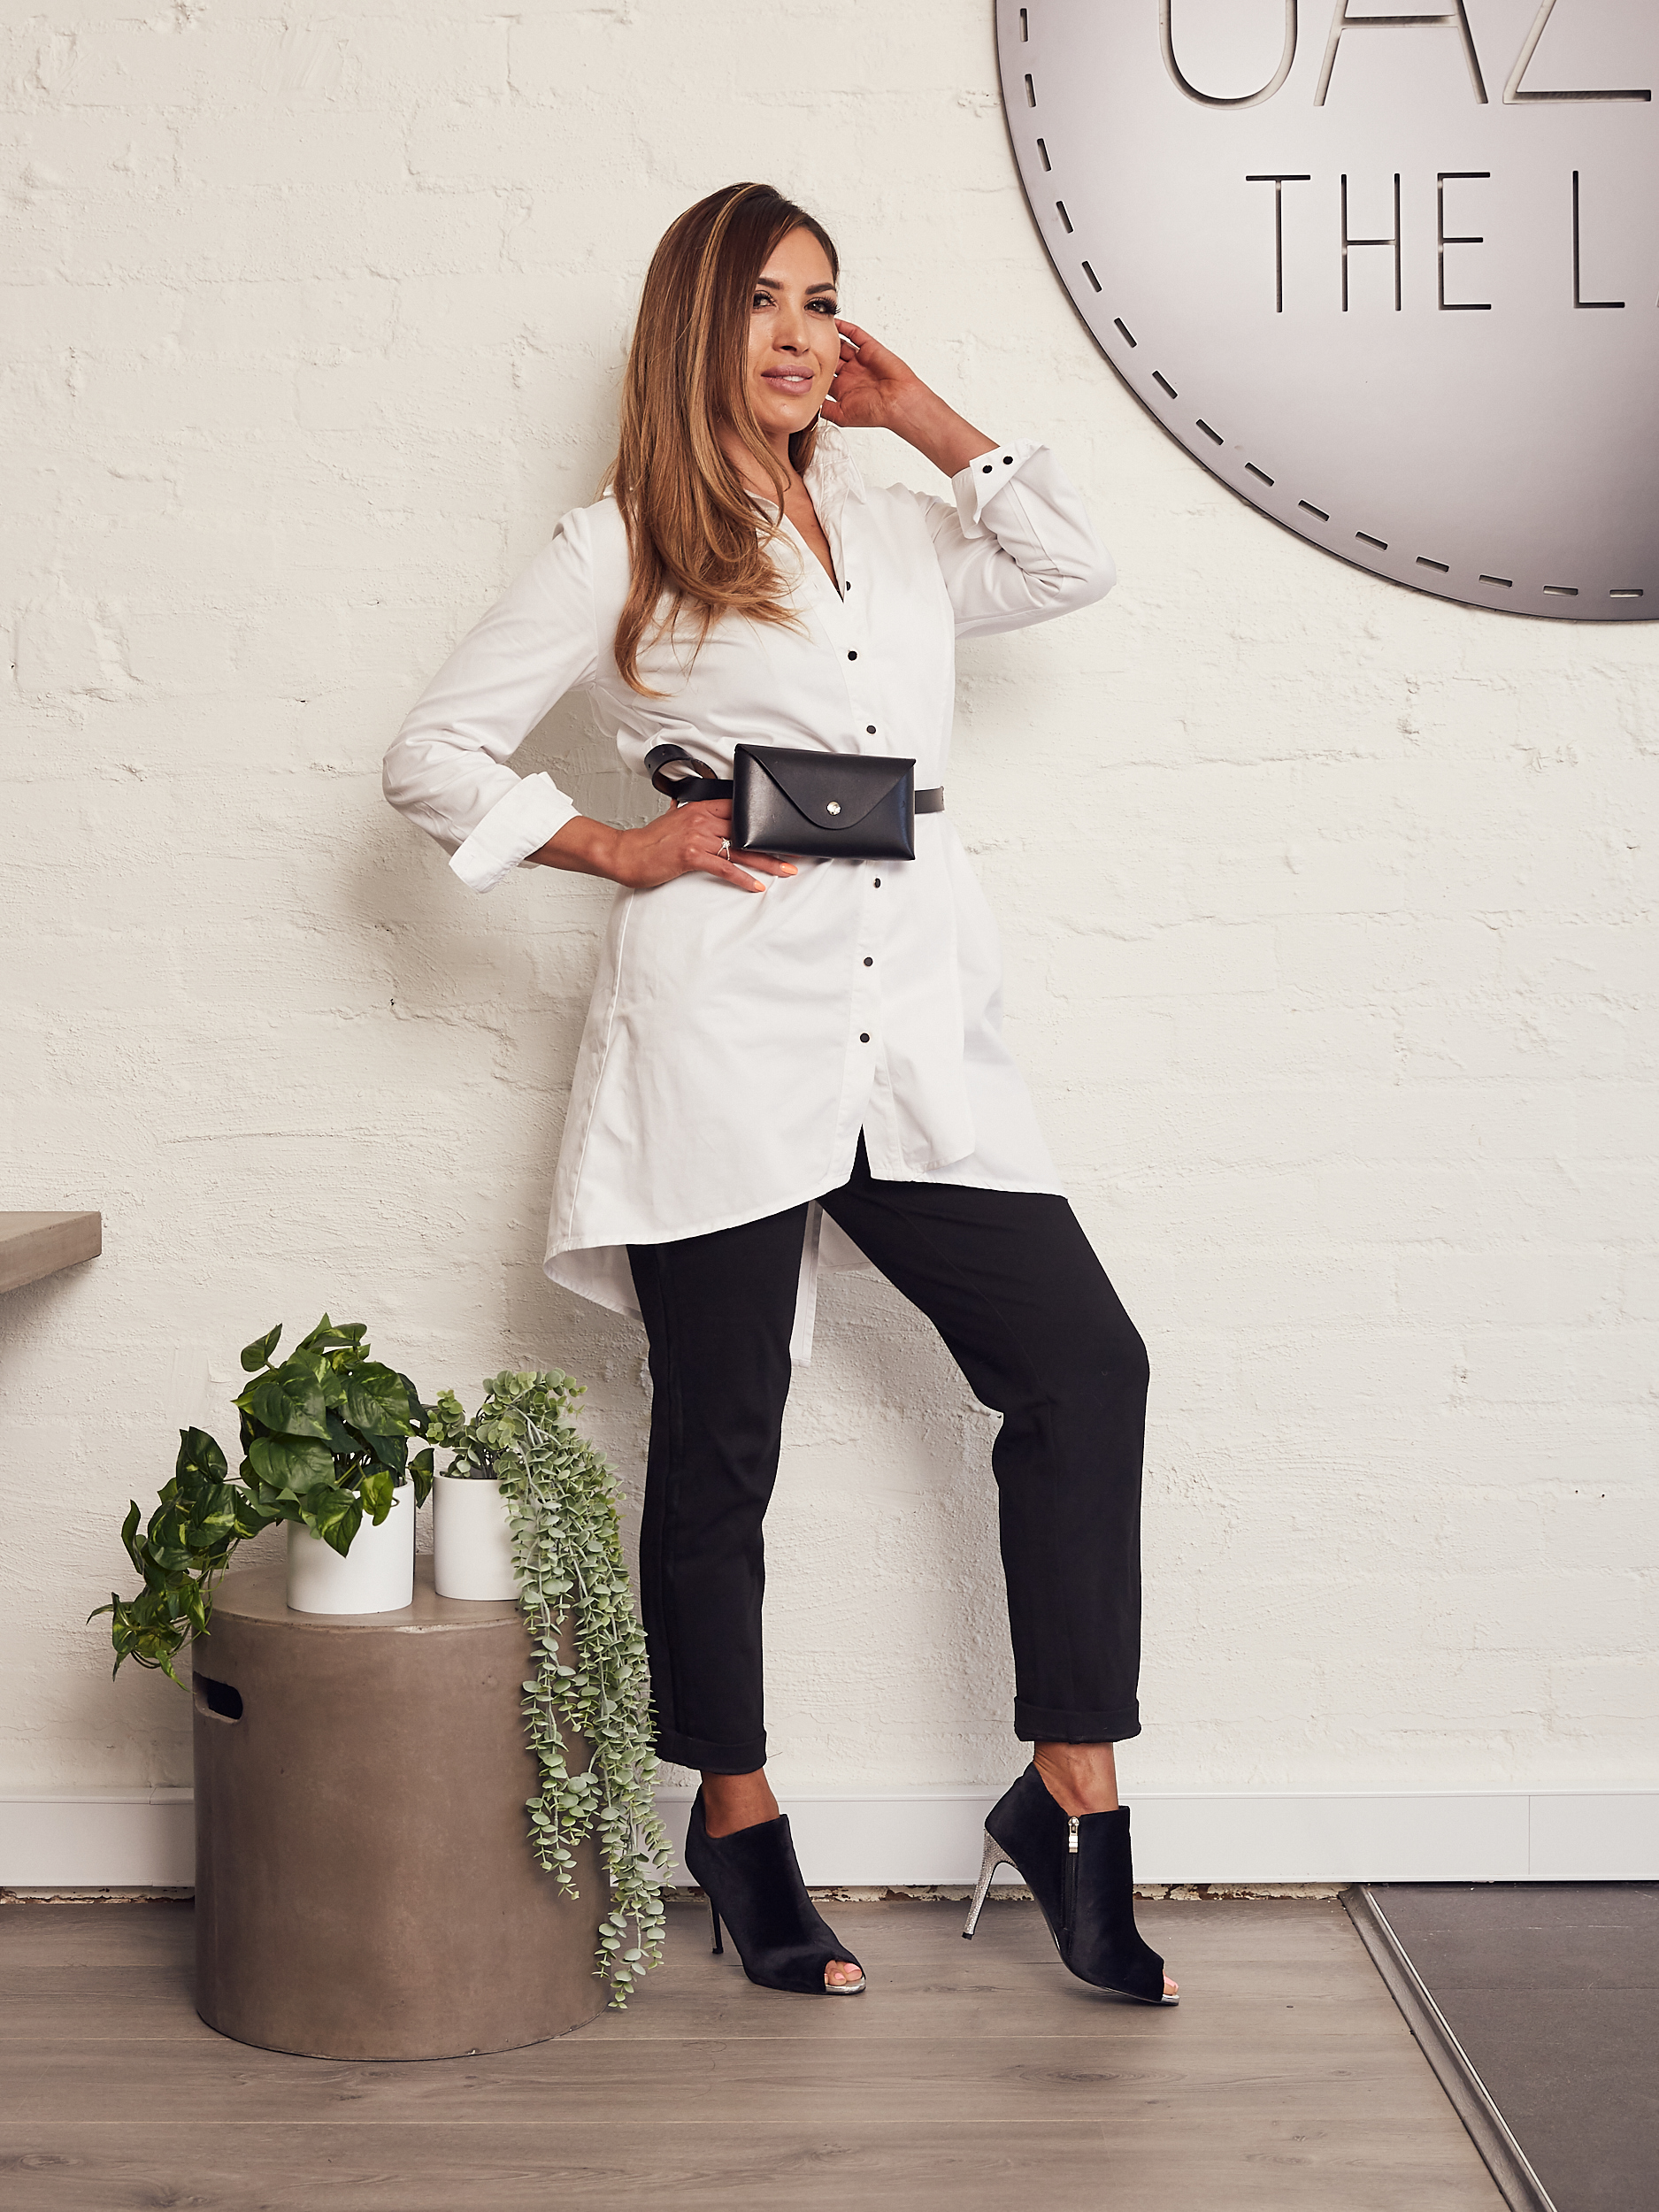 Style with our comfortable and stylish cigarette pants.